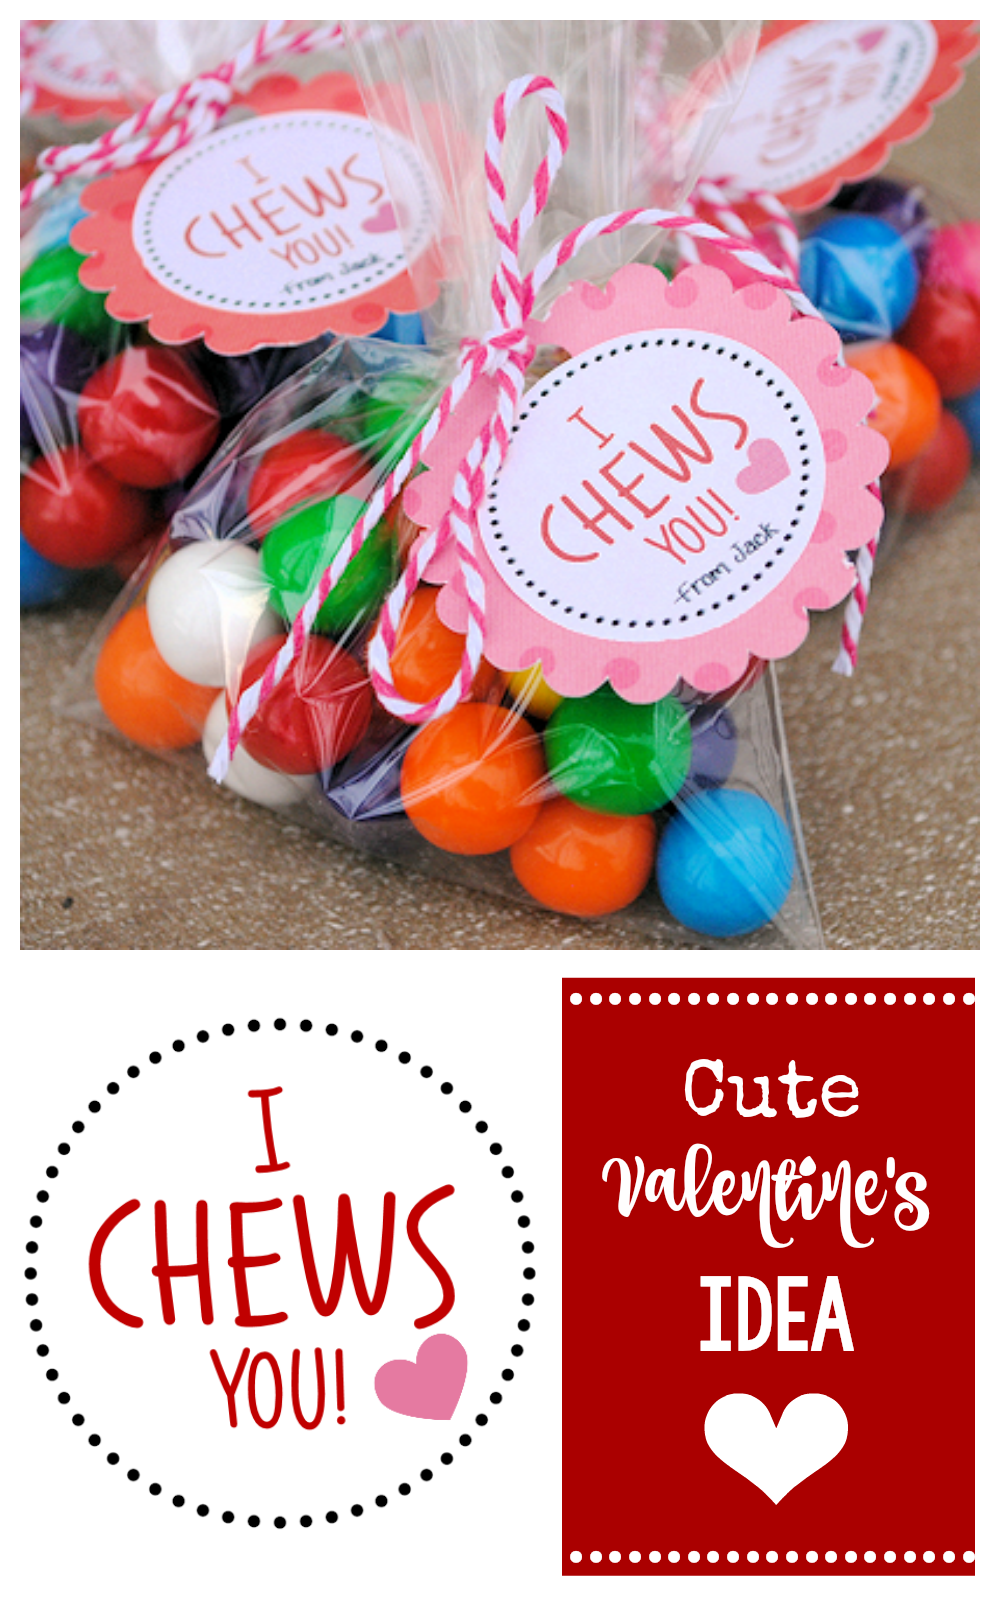 I Chews You Valentine-Add some cute gumballs and this tag and you've got a fun Valentine for the kids to give out! #valentinesday